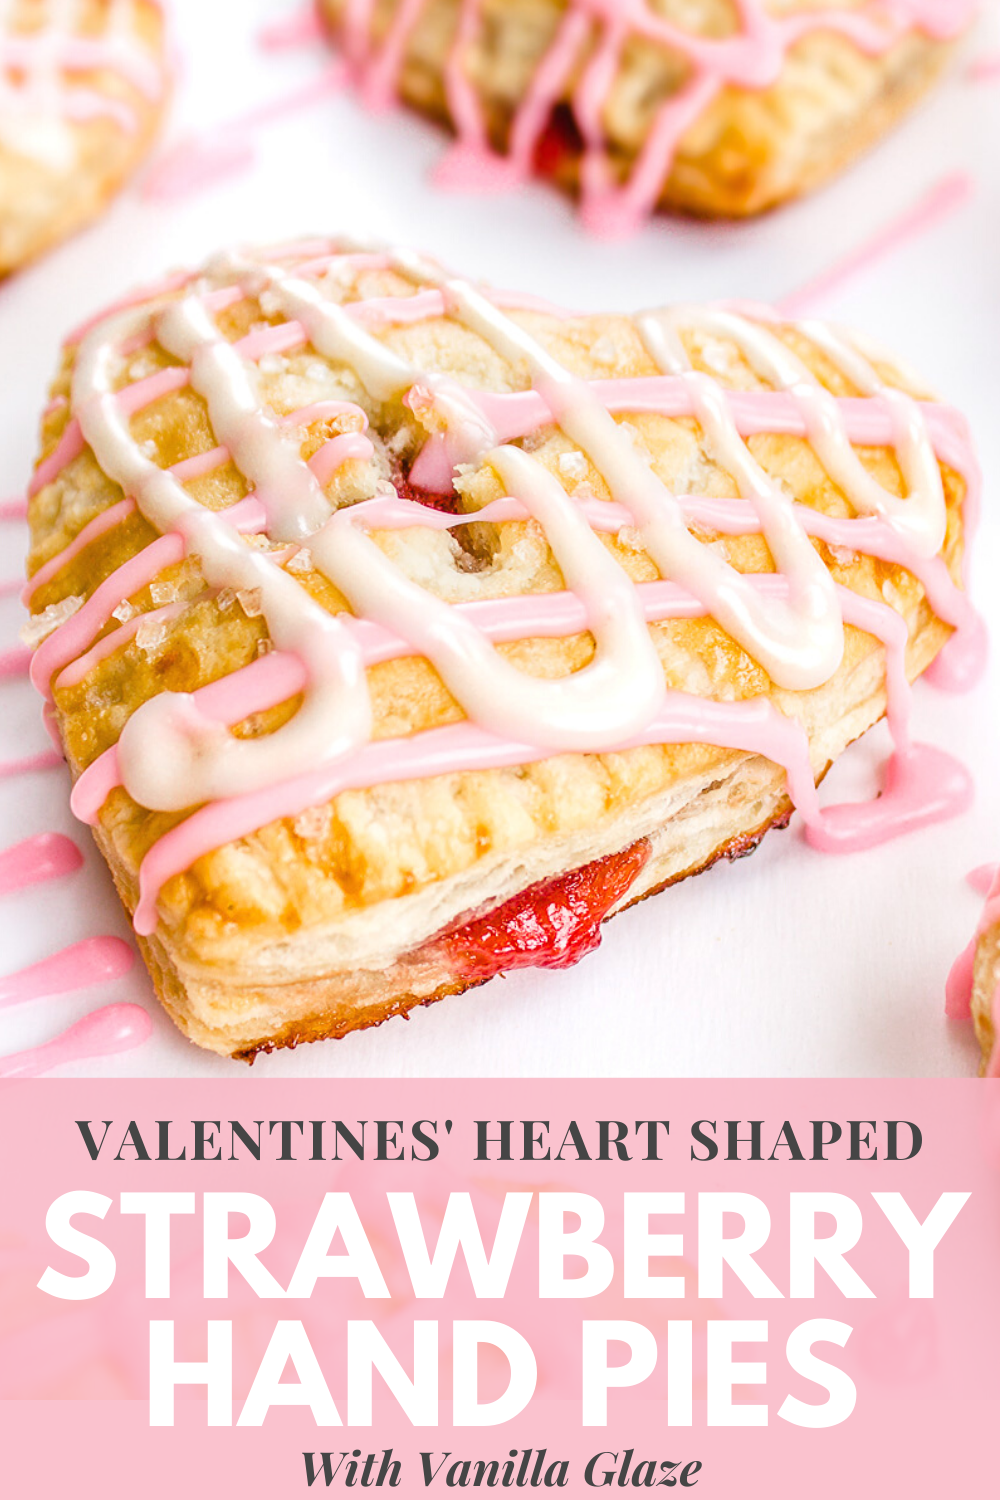 Heart Shaped Strawberry Hand Pies #recipeforpiecrust